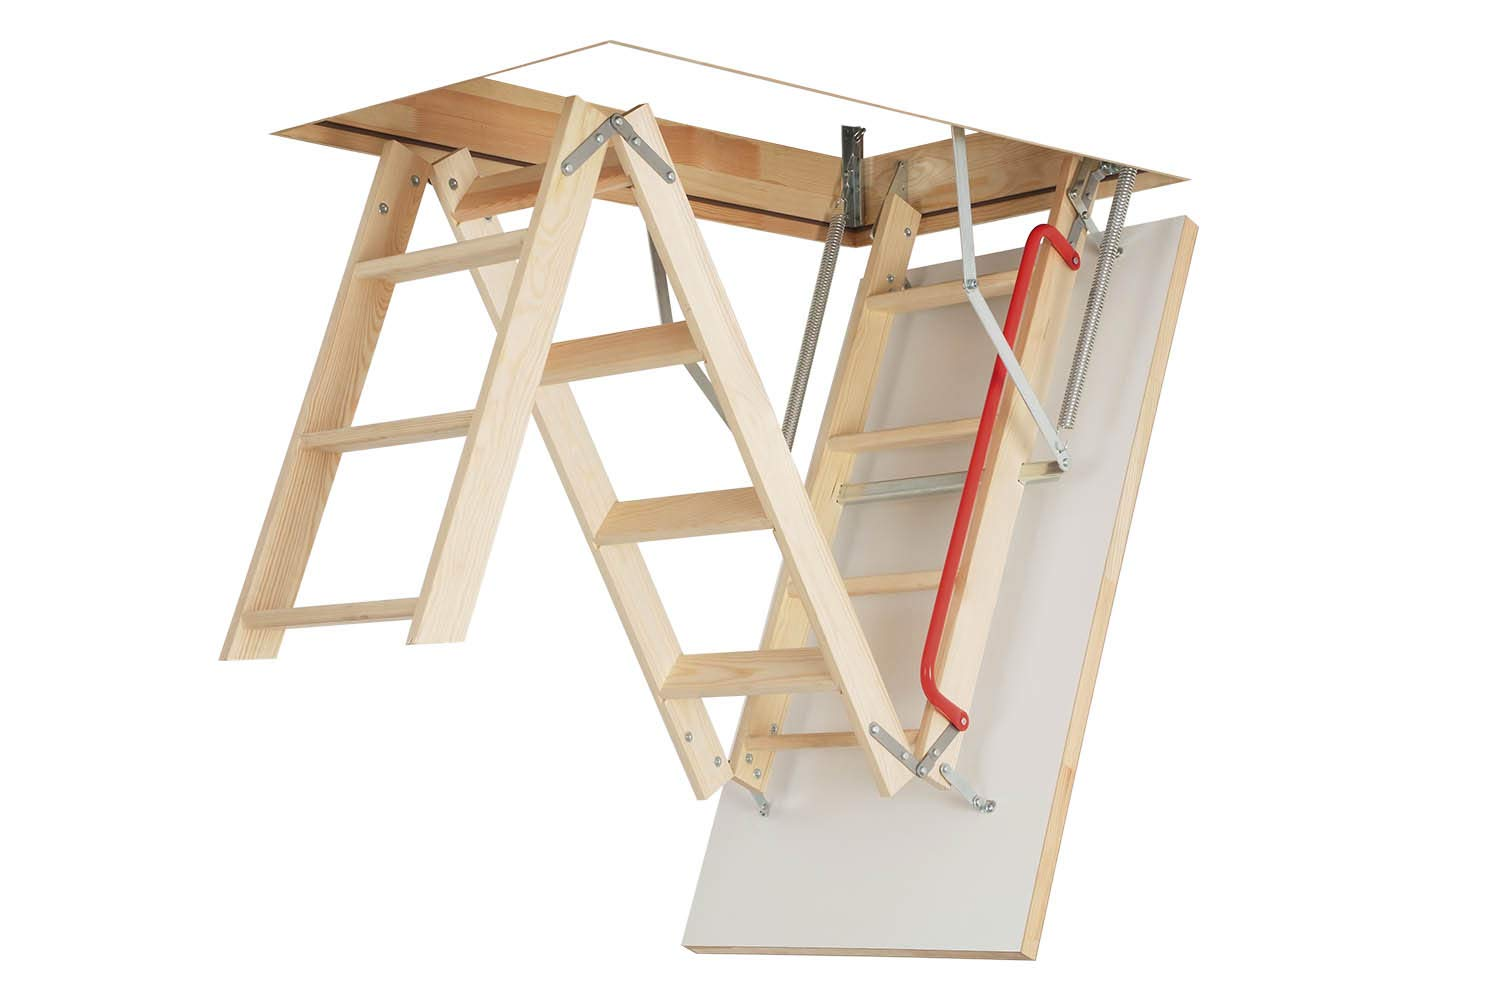 Optistep Wooden Timber Folding Loft Ladder Attic Stairs. Frame size W60cm x L111cm H up to 280cm & Insulated Hatch